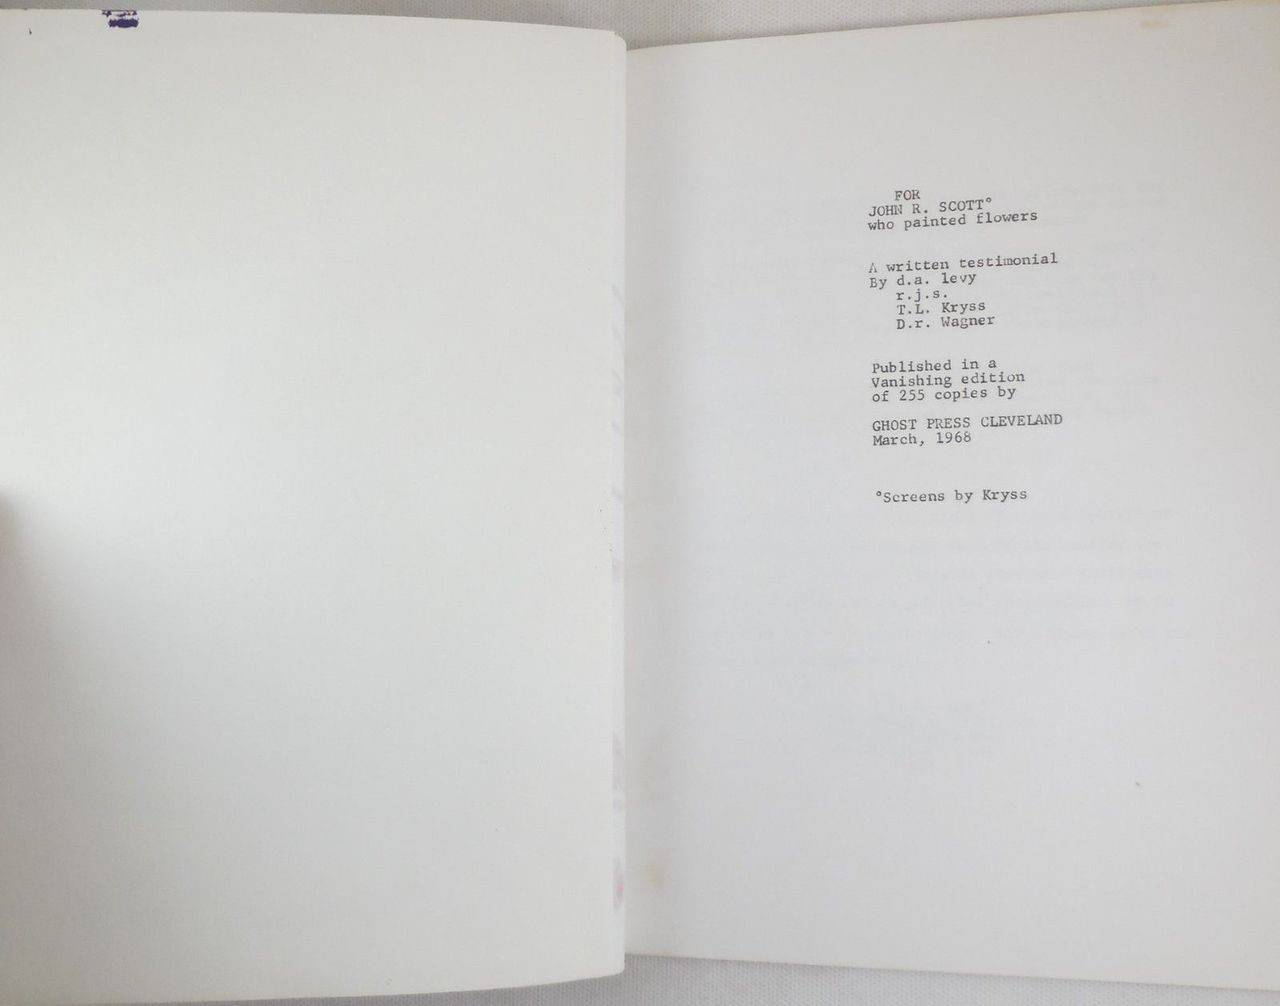 FOR JOHN SCOTT WHO PAINTED FLOWERS, by D.A. Levy; T.L. Kryss - 1968 [Mimeo Revolution]